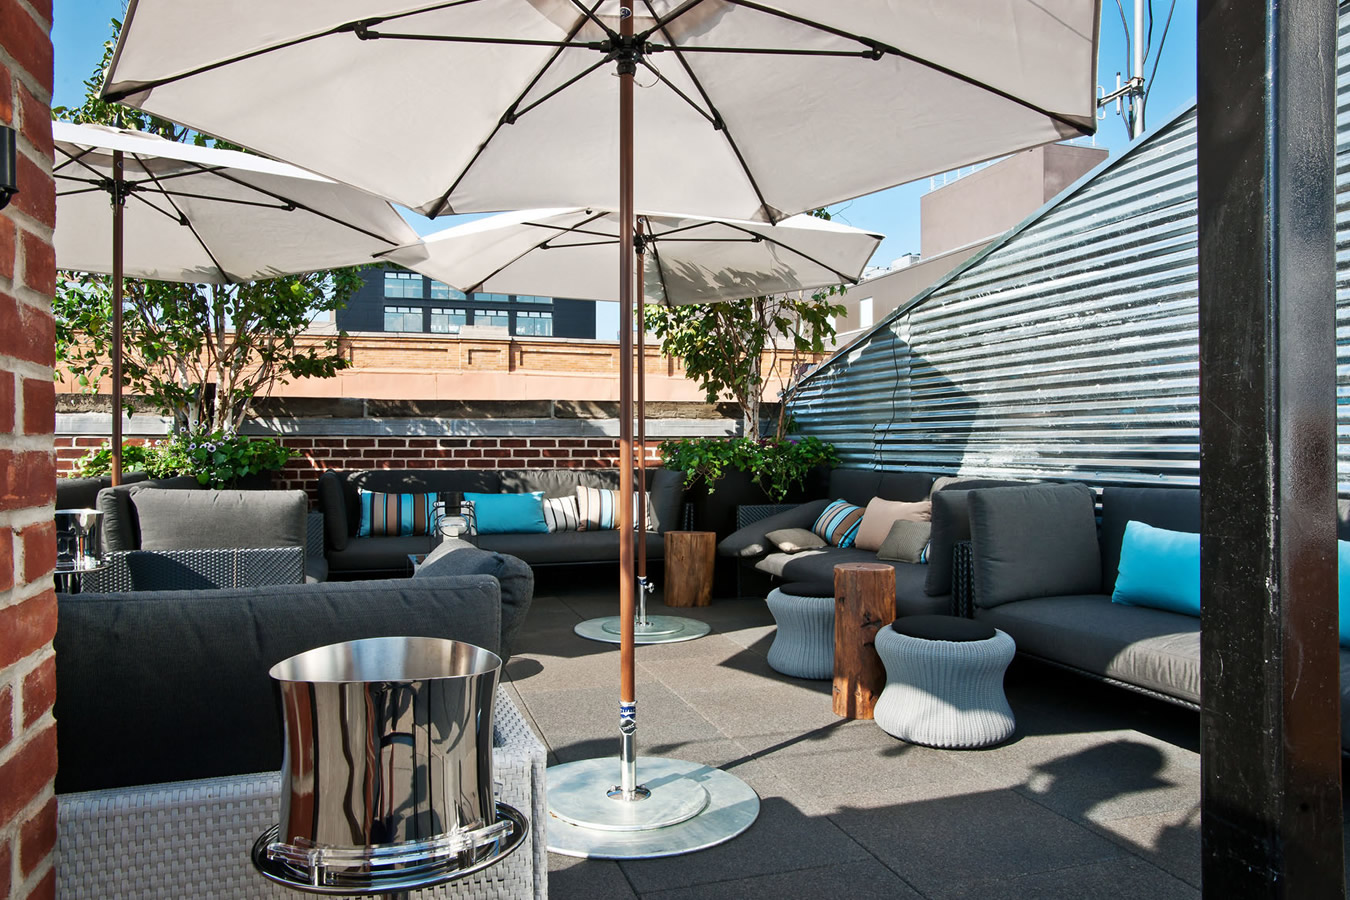 Stk Rooftop Lebello Outdoor Furniture